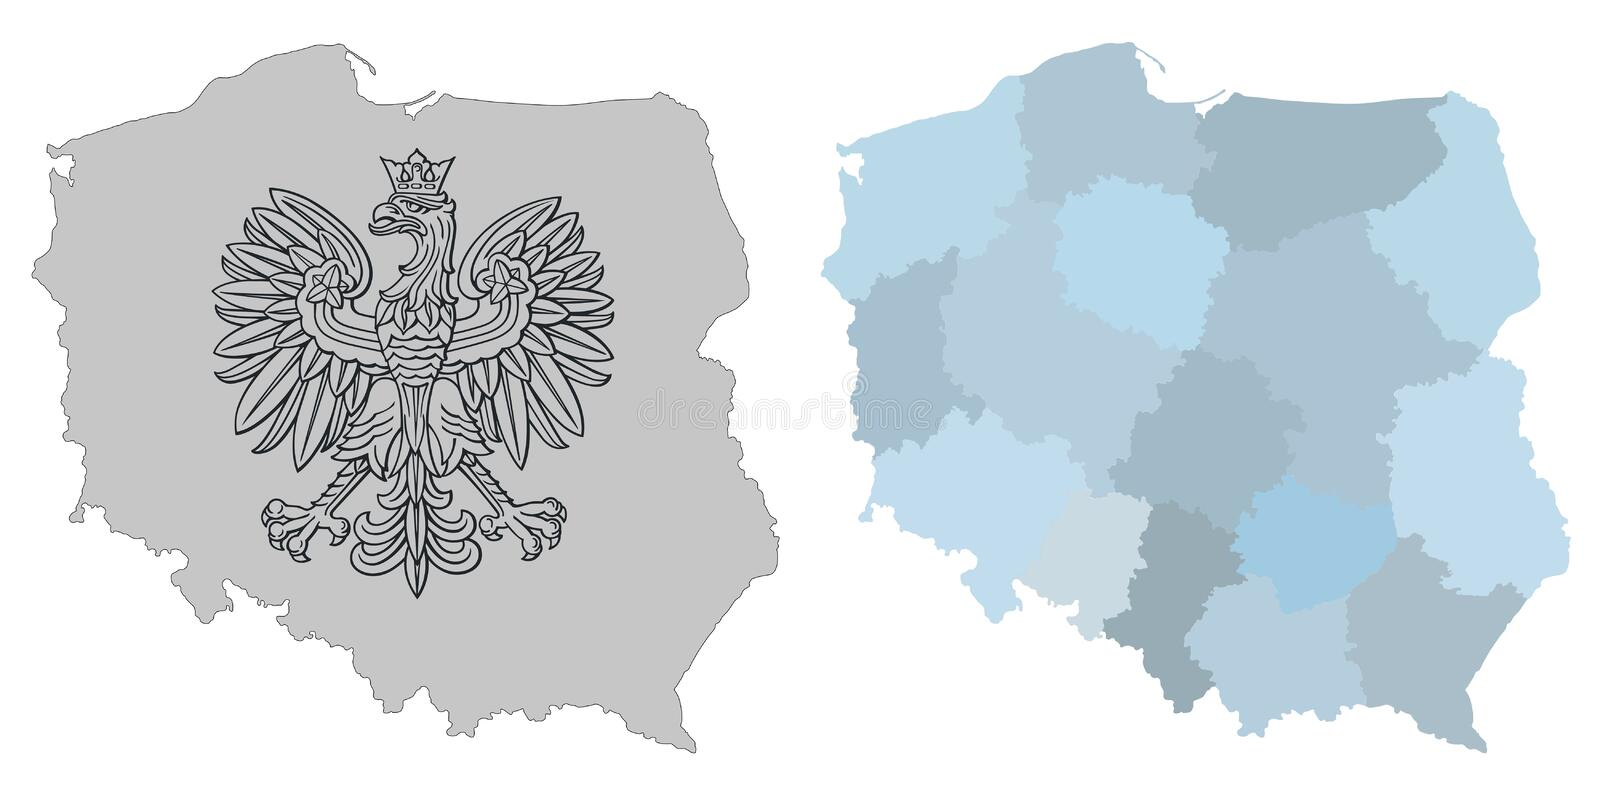 Map of Poland. Map of Poland, vector illustration vector illustration